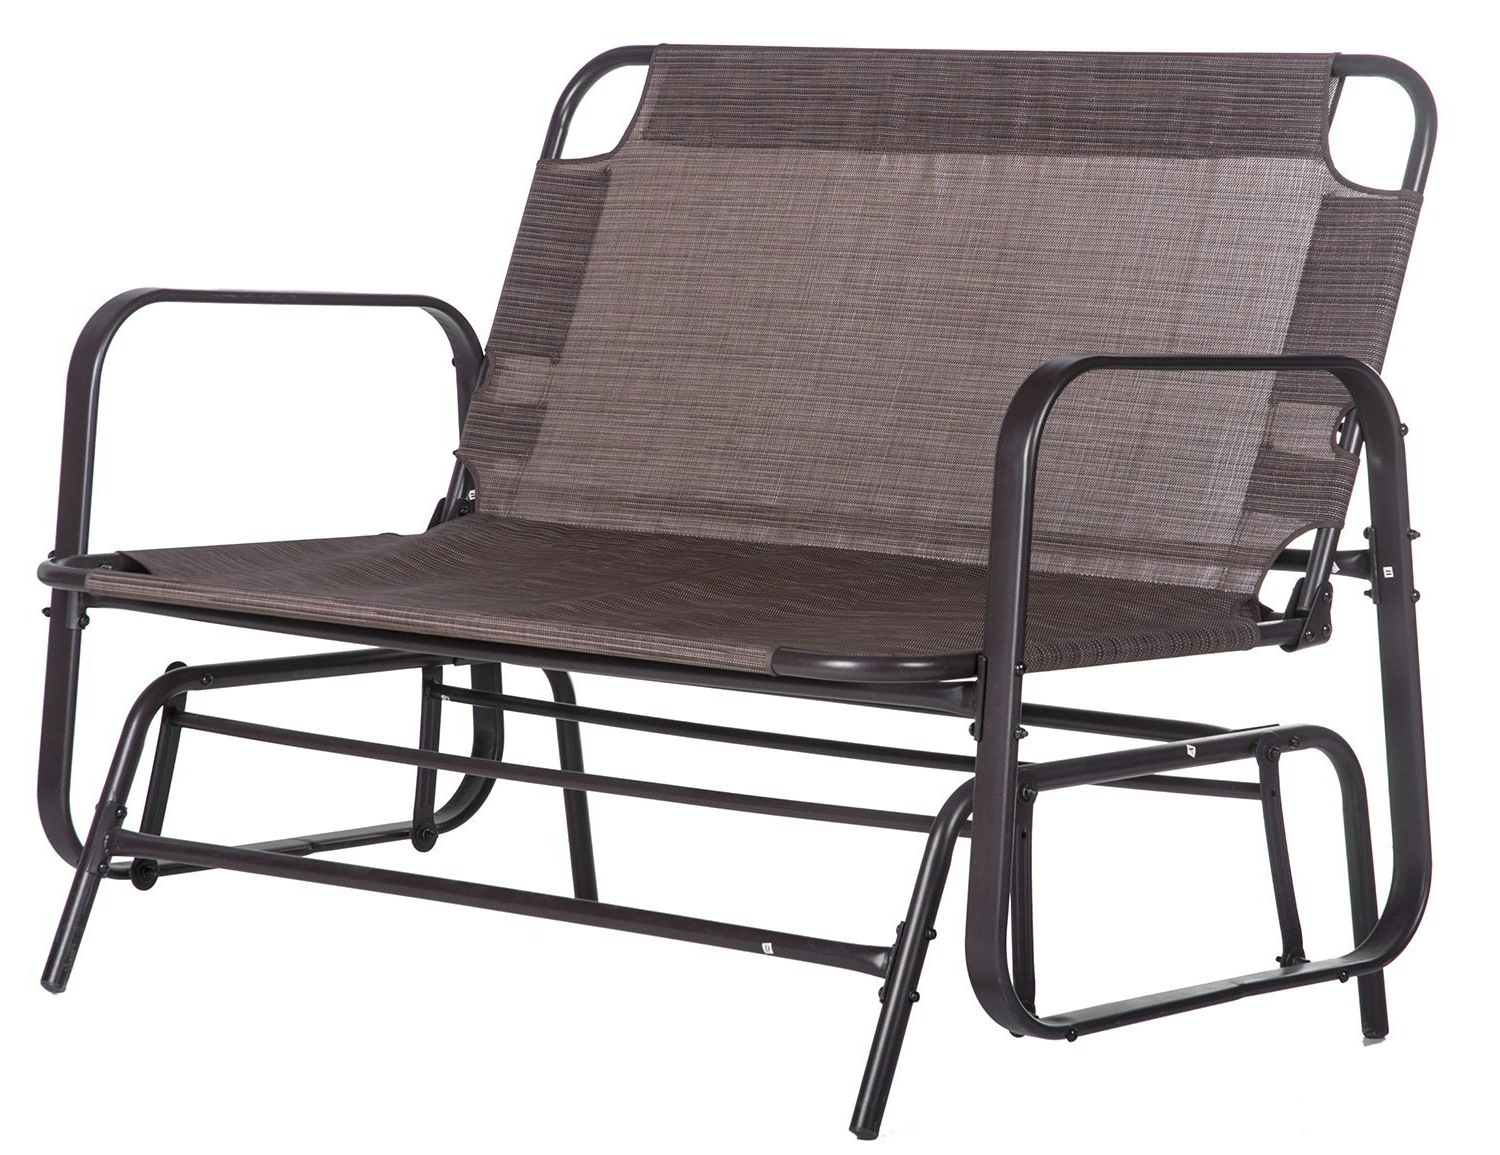 Buy Merax Patio Loveseat Glider Rocking Chair Garden Outdoor With Regard To Preferred Glider Benches With Cushions (Gallery 13 of 30)